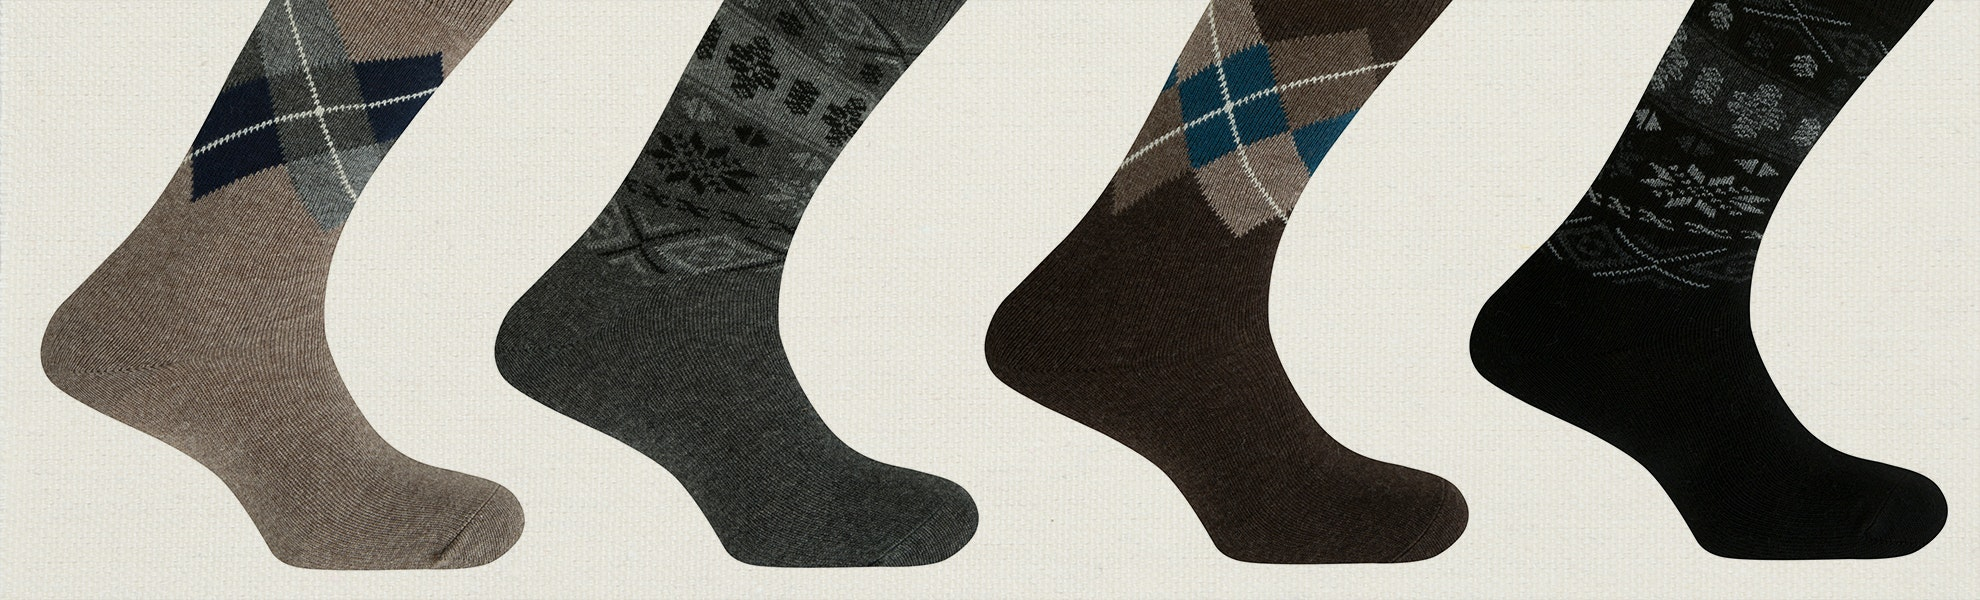 Punto Blanco Wool/Cashmere Socks (3-Pack)